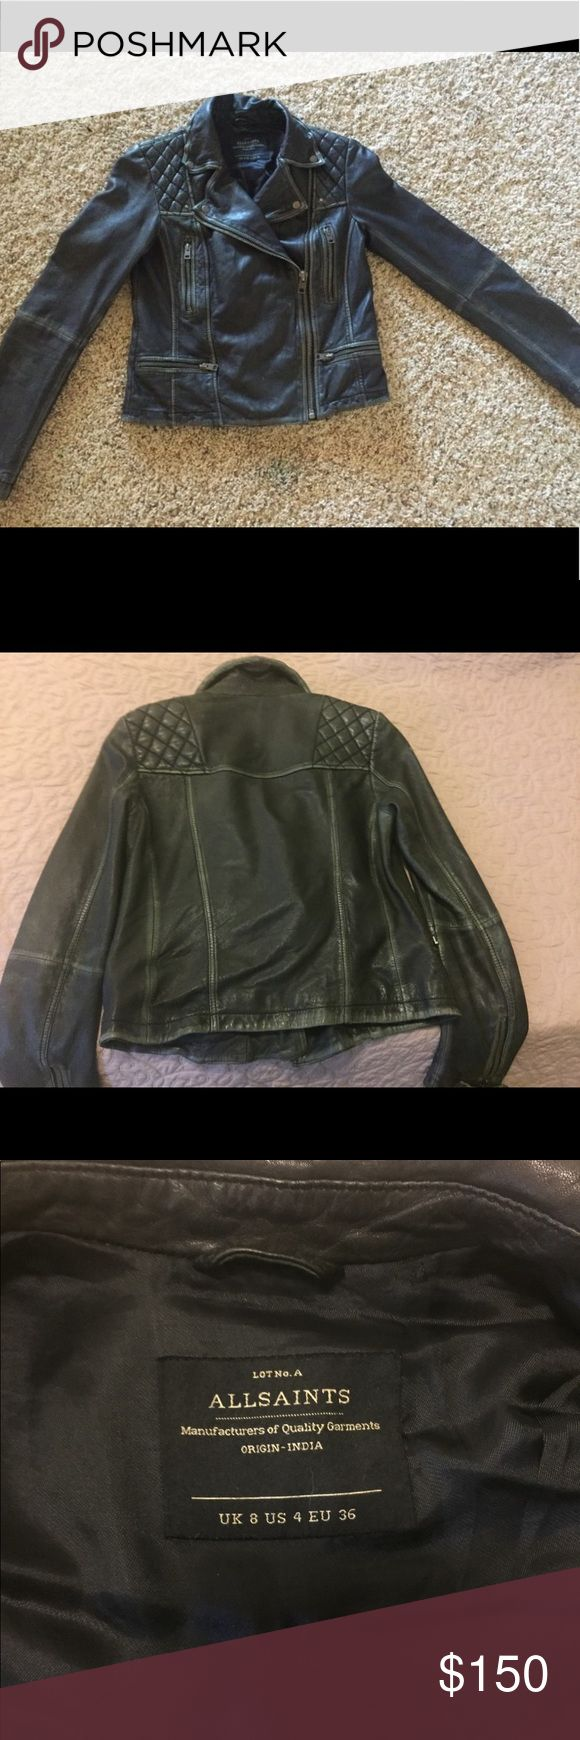 Genuine ALL SAINTS Black Leather Jacket This is incredible jacket. It retails for over $500, and unfortunately is a bit too small for me. USA size 4. All real leather, has a gorgeous olive green tone to the black/grey leather, and has manufactured wear (please see pics). Has only been worn a few times; in amazing condition! All Saints Jackets & Coats